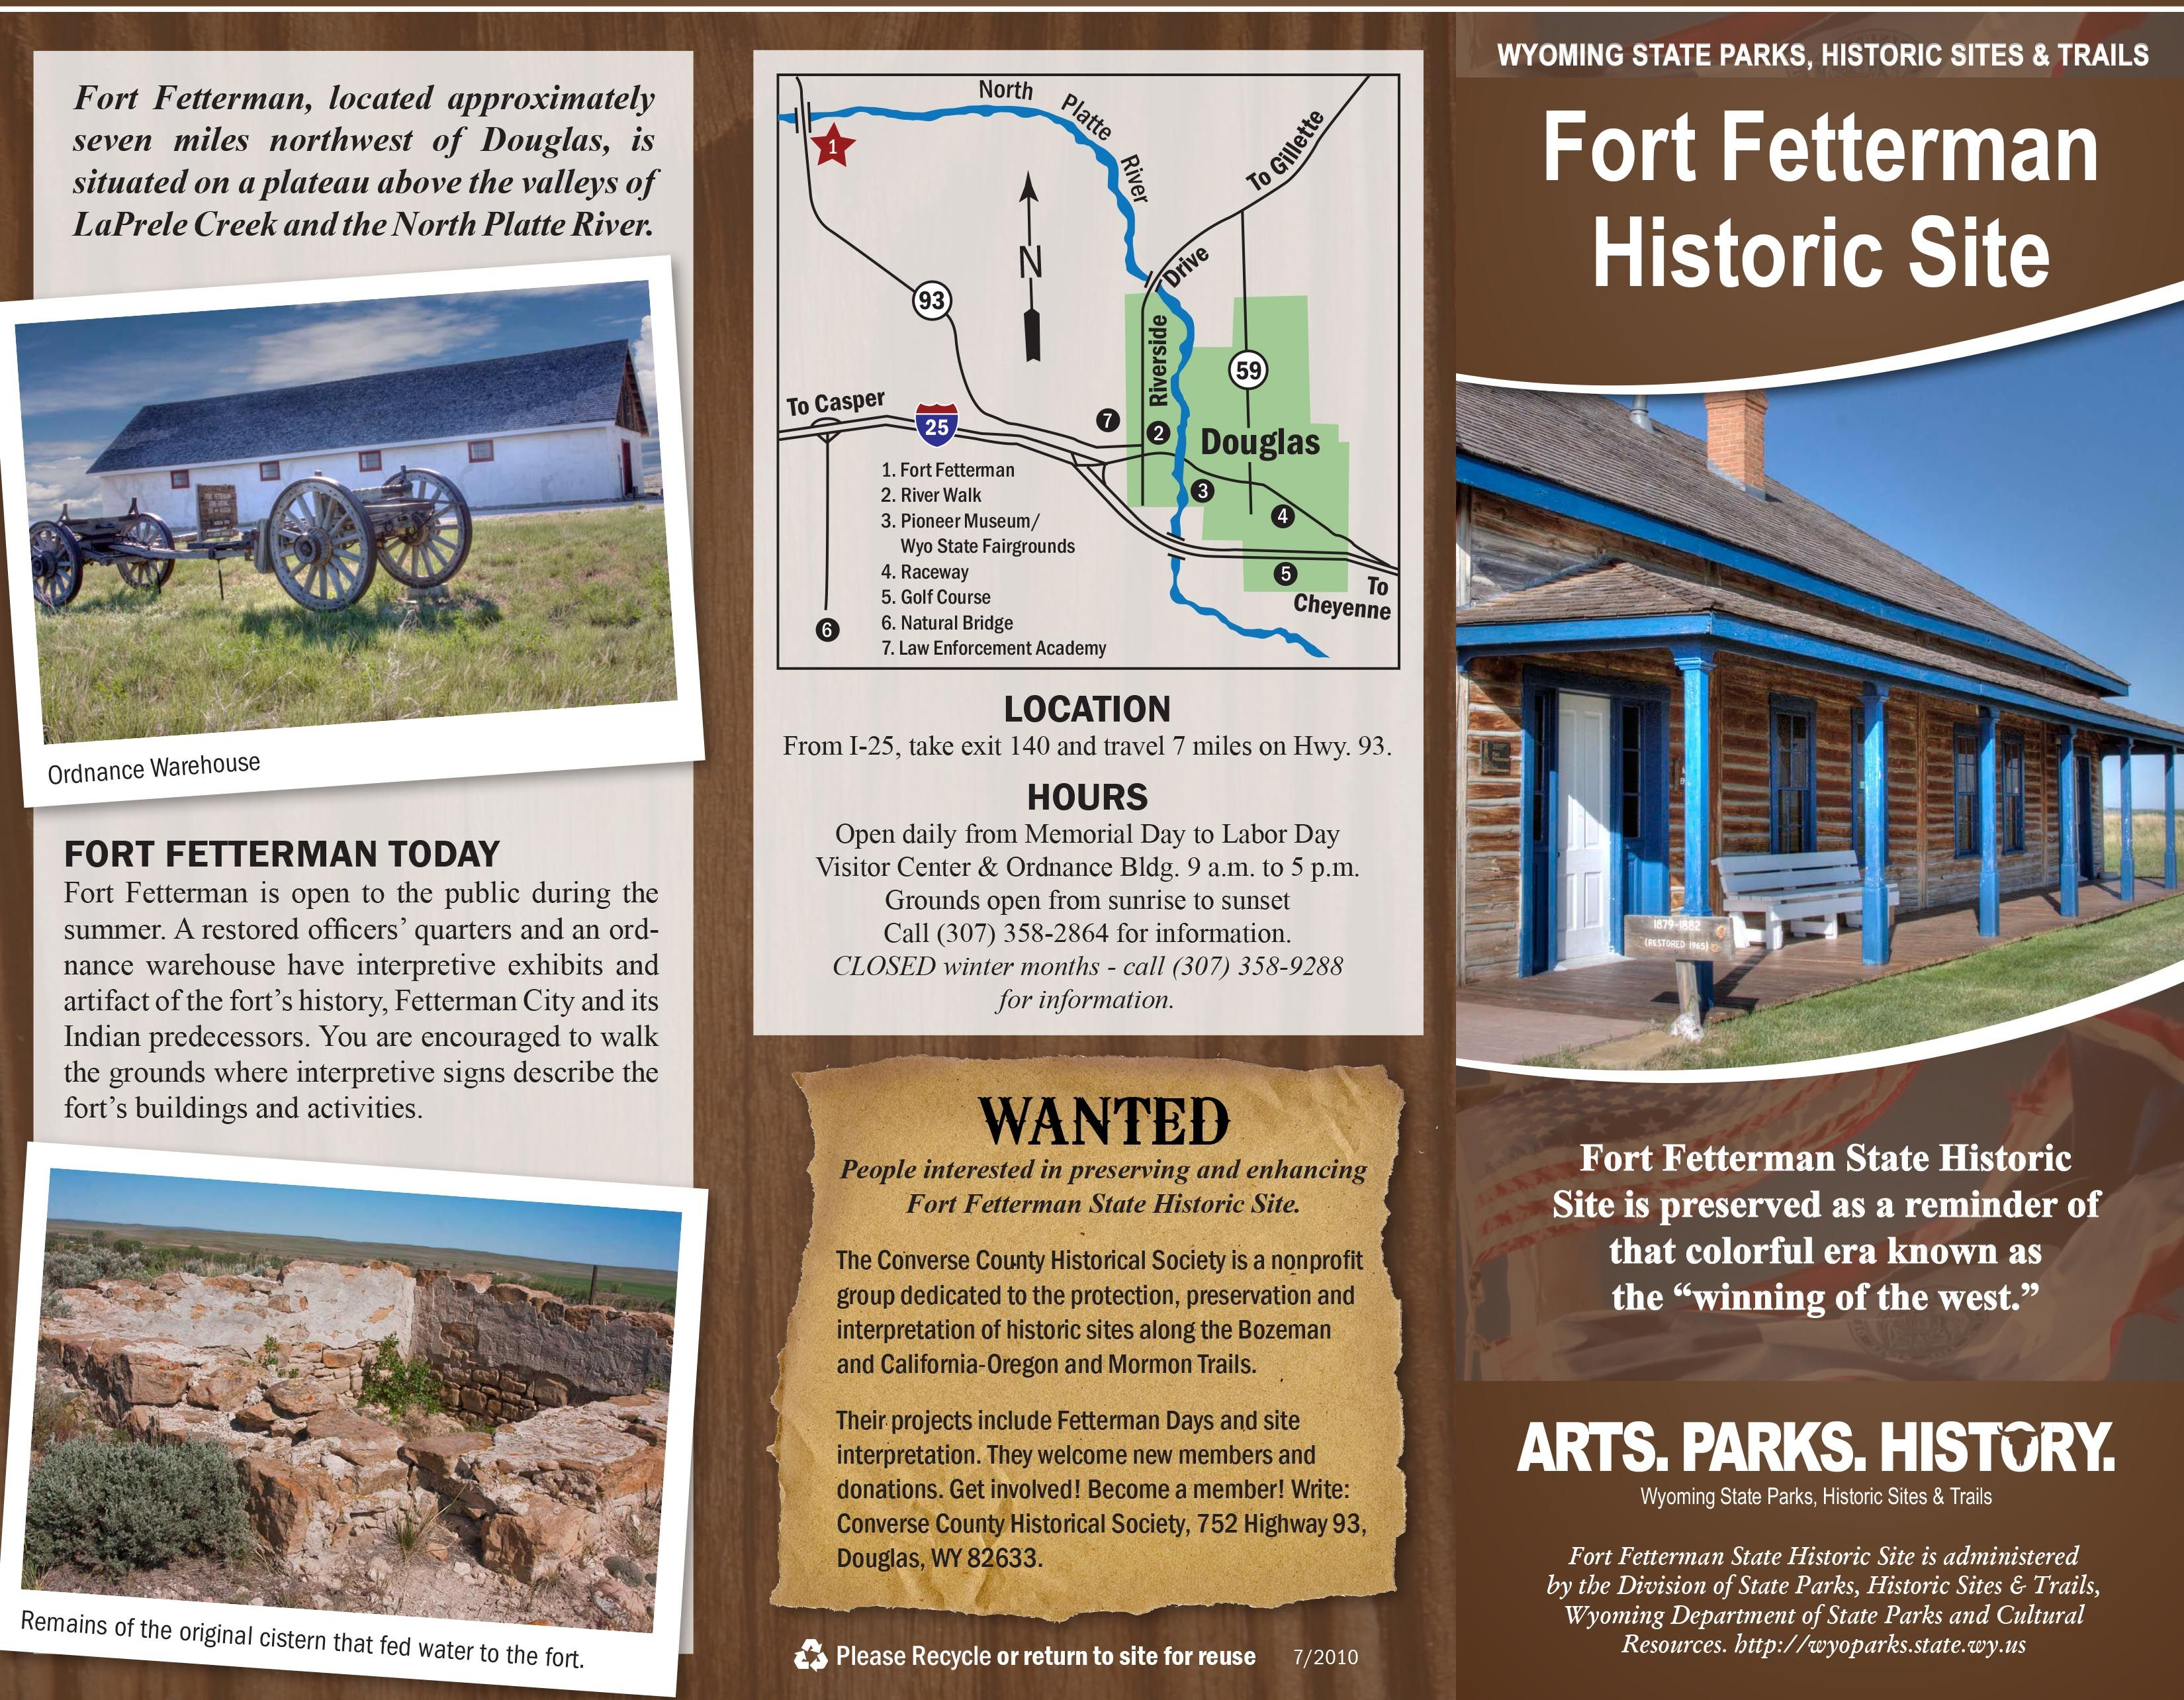 Fort Fetterman State Historic Site Brochure North Platte Historical Sites Wyoming State